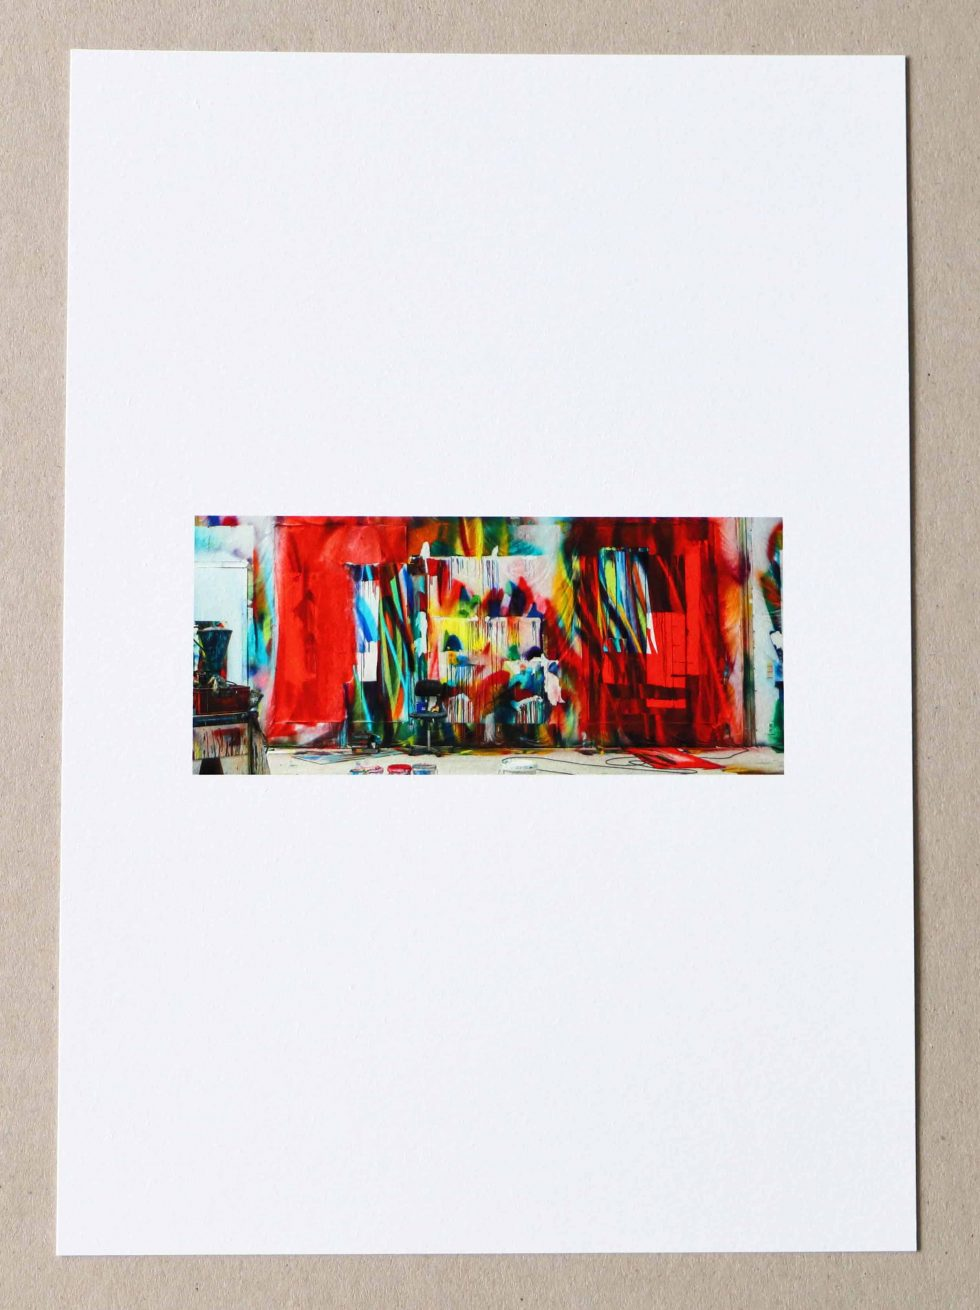 Lot #9517 – Katharina Grosse Der Stuhl Print Limited Edition Art Katharina Grosse